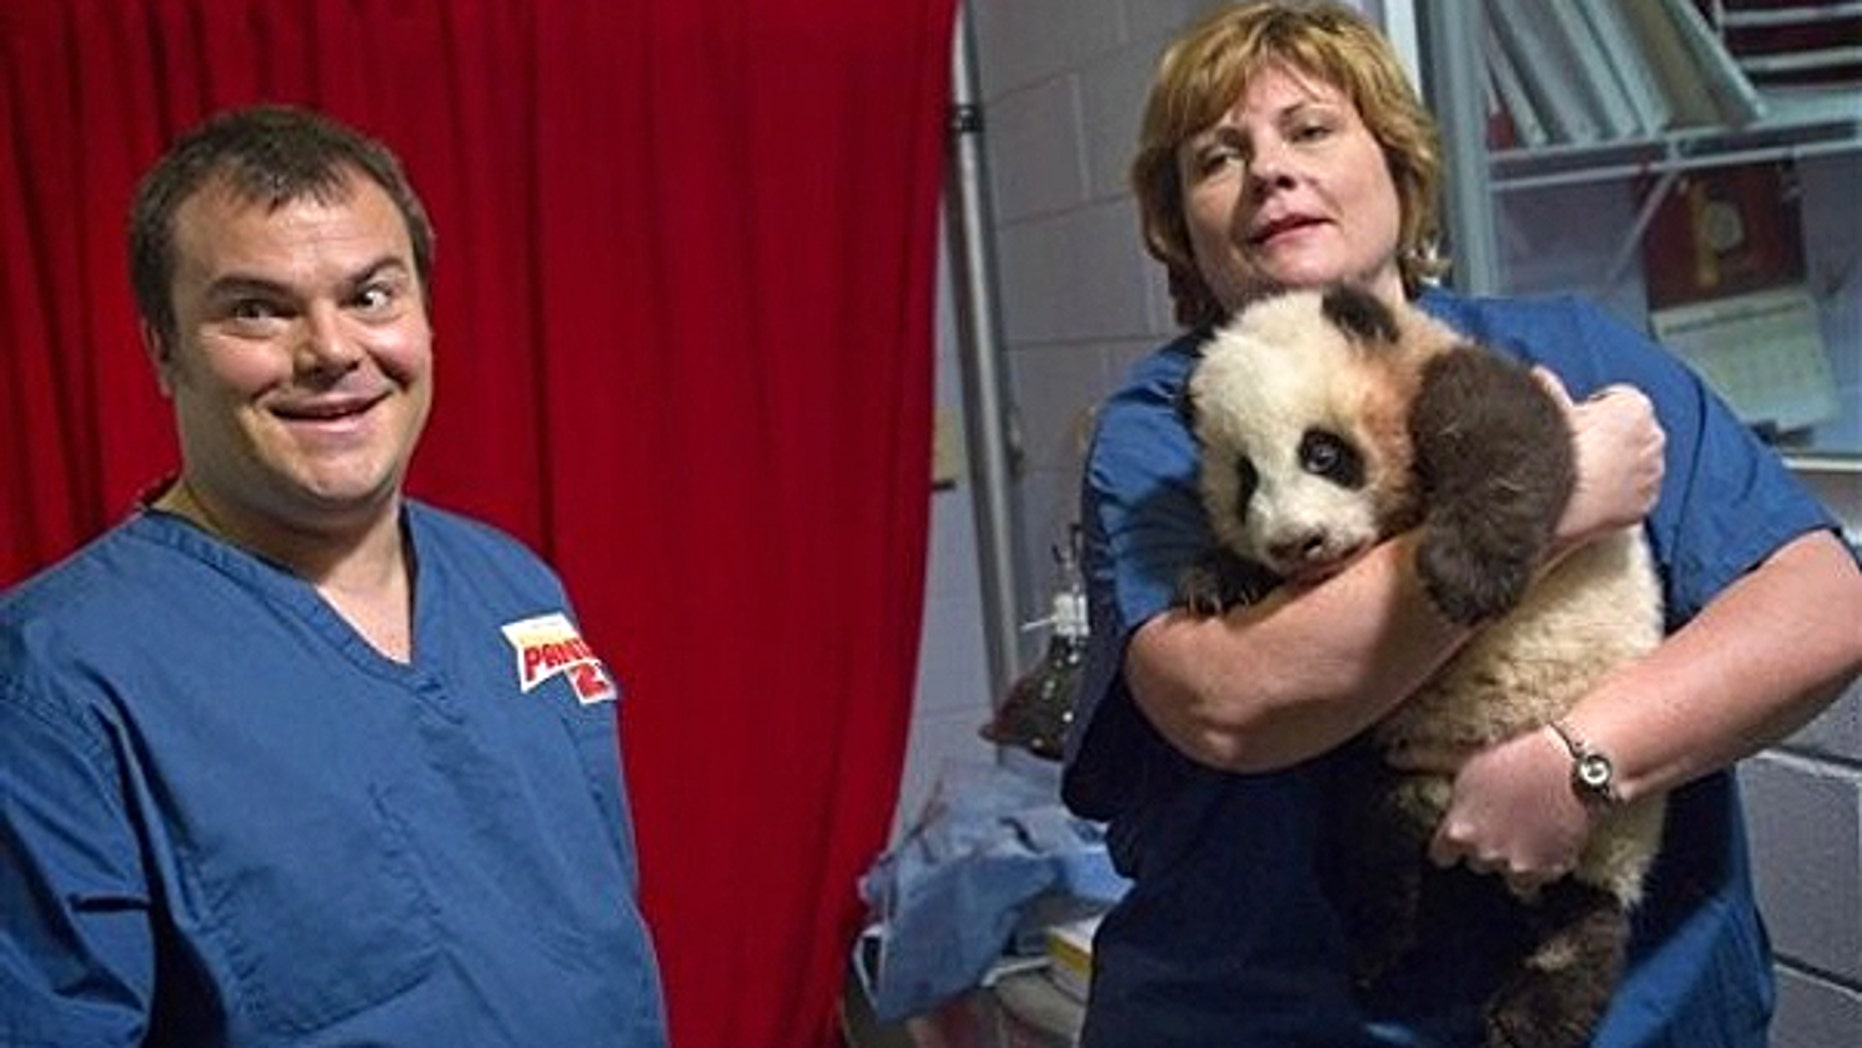 Feb. 15: Dr. Hayley Murphy, director of veterinary services at Zoo Atlanta, right, brings out a 3-month-old giant panda cub as actor Jack Black looks on before a naming ceremony in Atlanta.